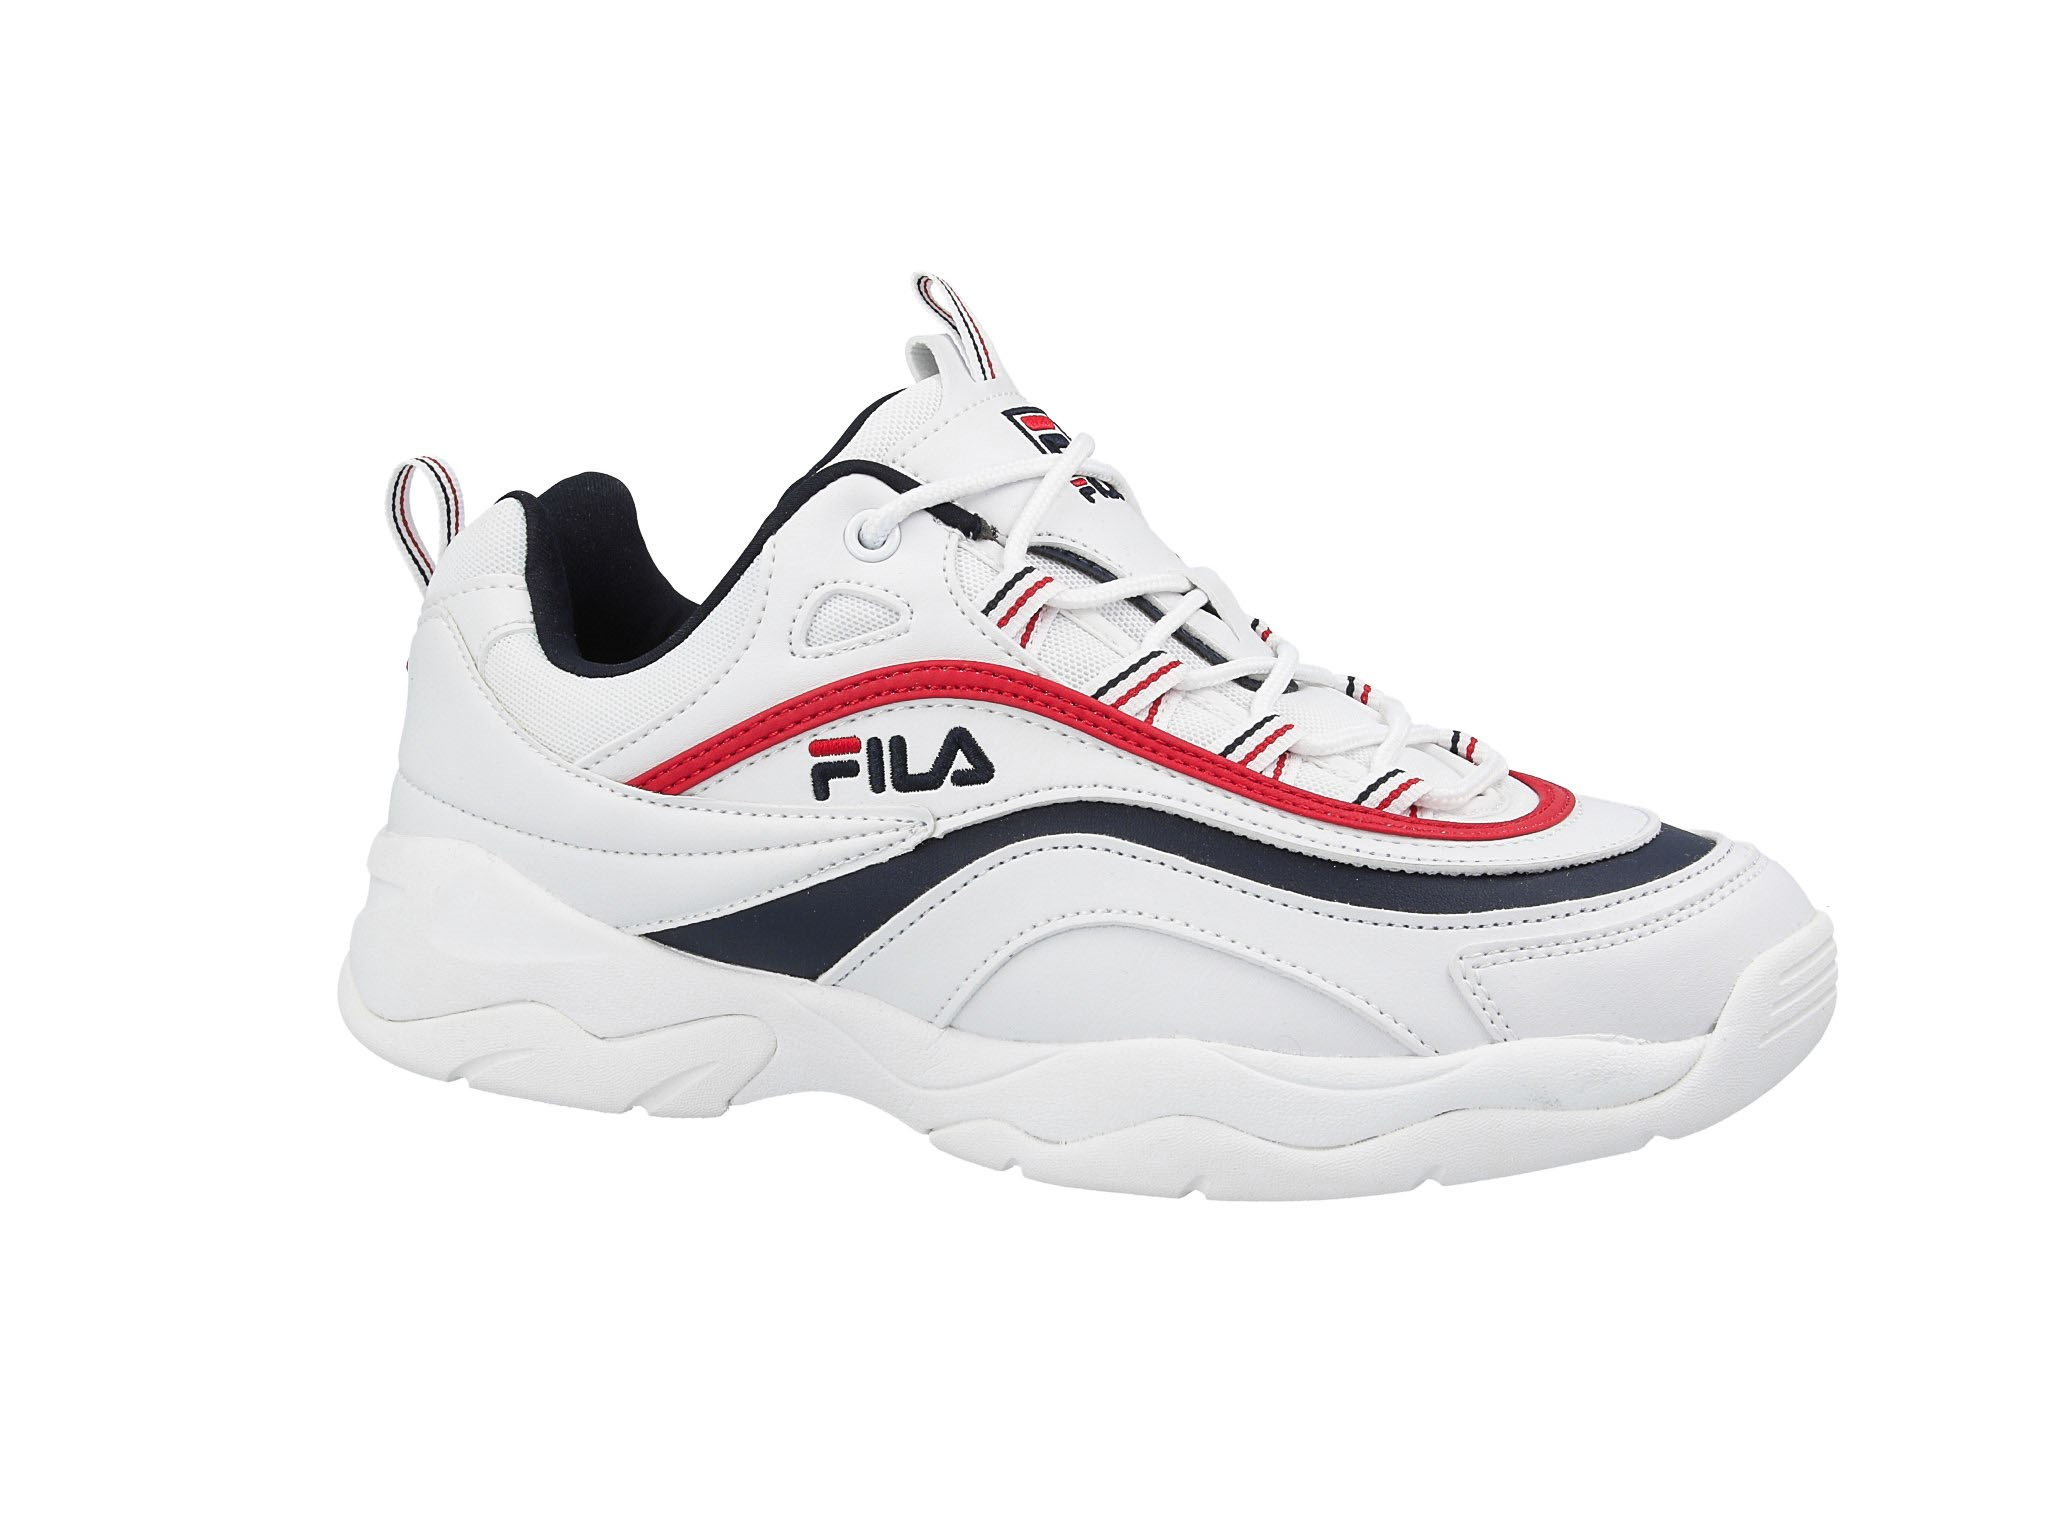 Sneakers buty FILA Ray Low whitefila navyfila red (1010561.150)